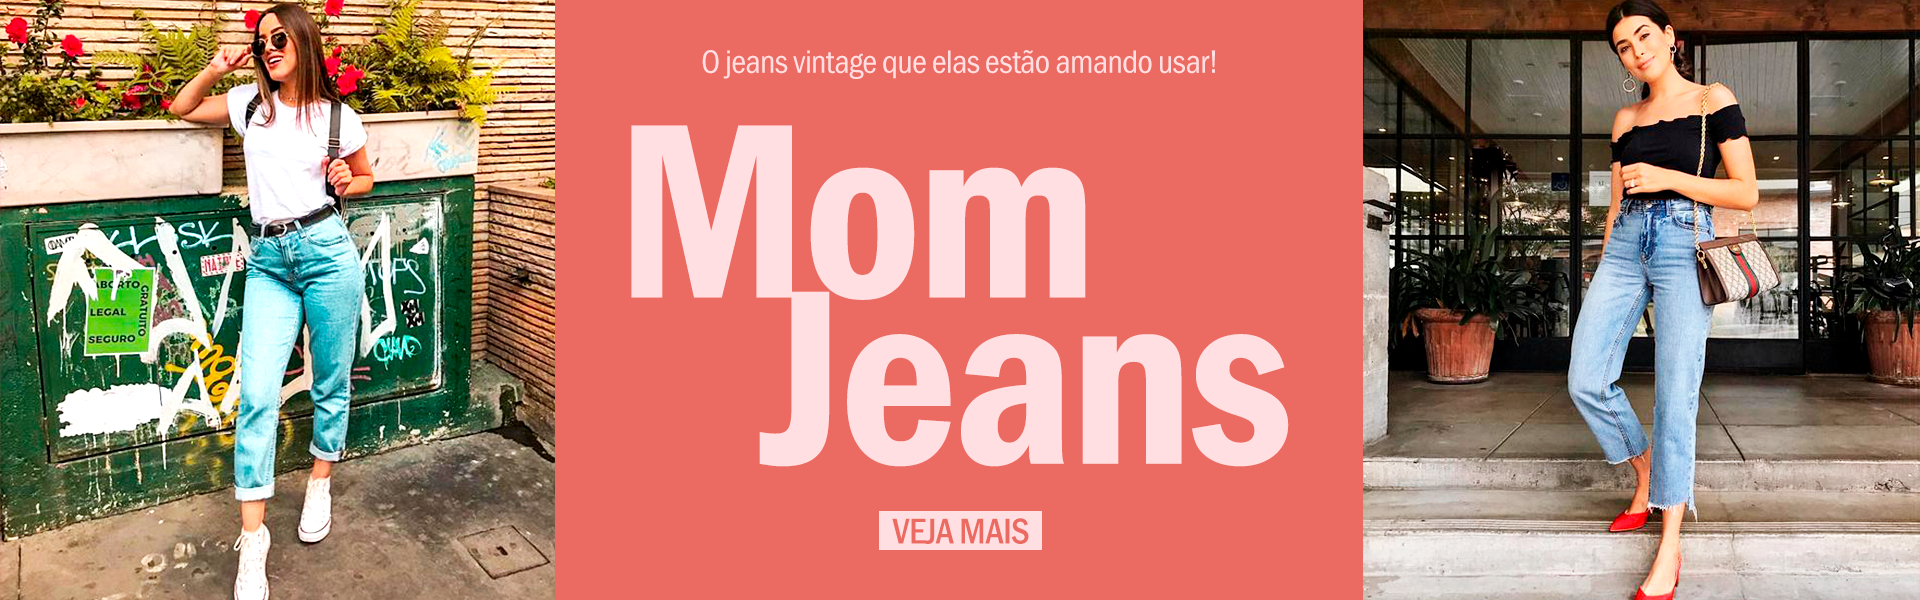 banner_1920x600_Mom_Jeans